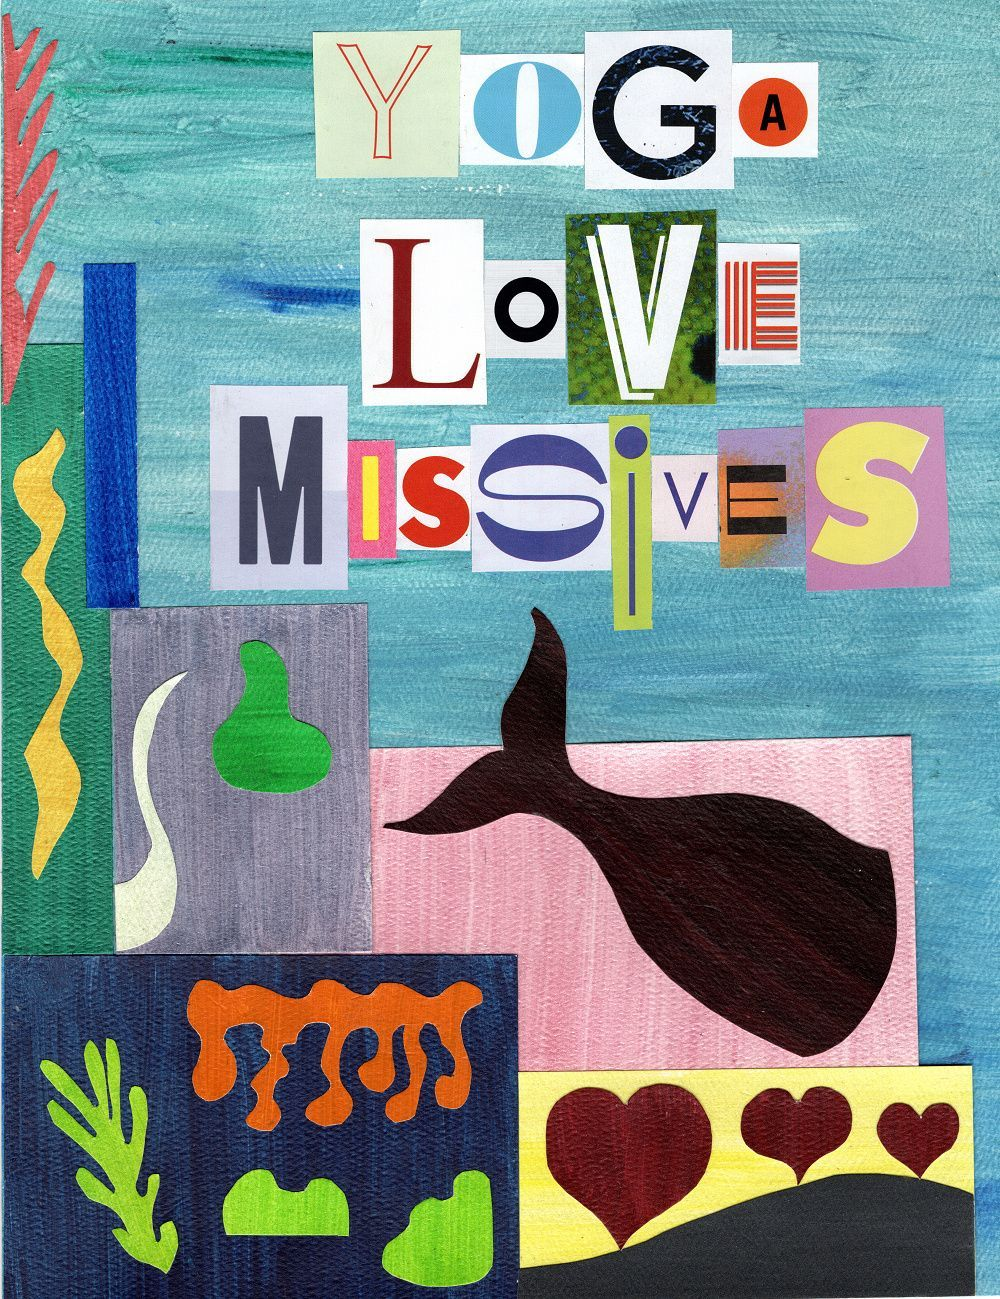 Yoga Love Missive In 2020 Art Cover Journal Prompts Essays